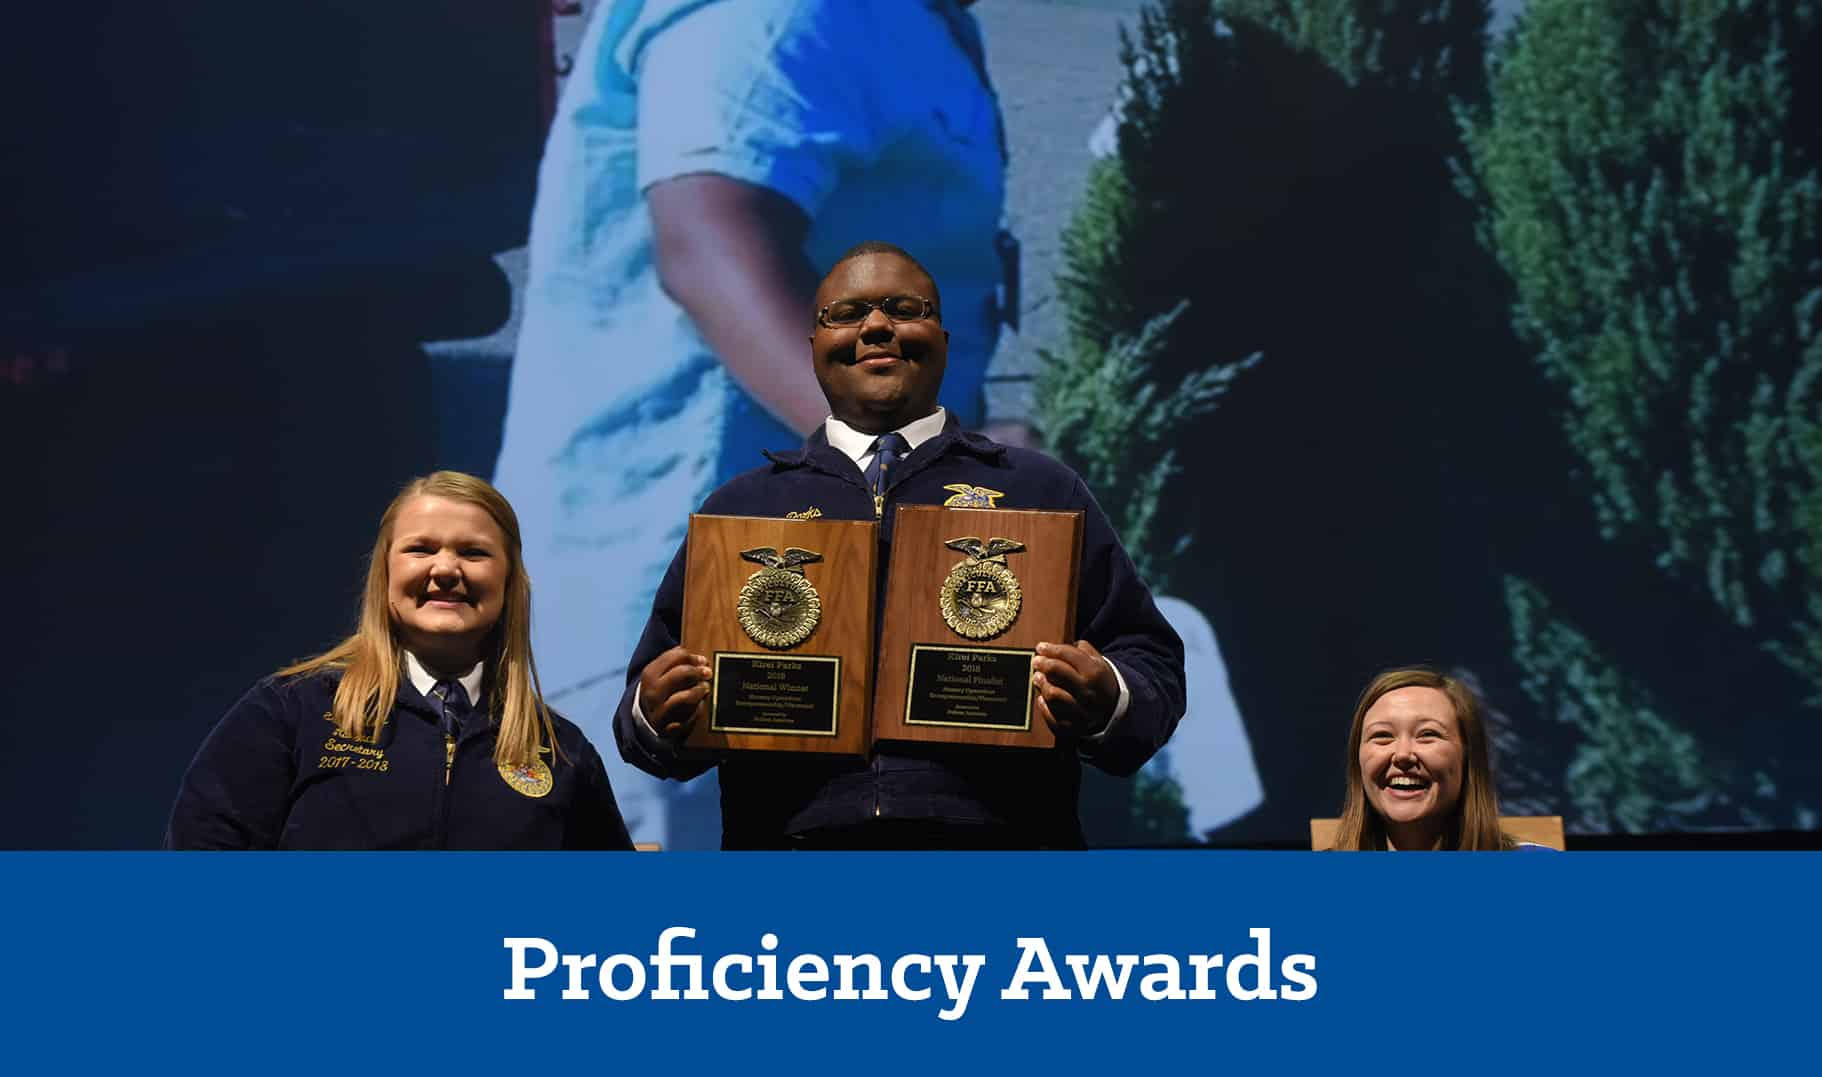 Proficiency Awards - Application Center